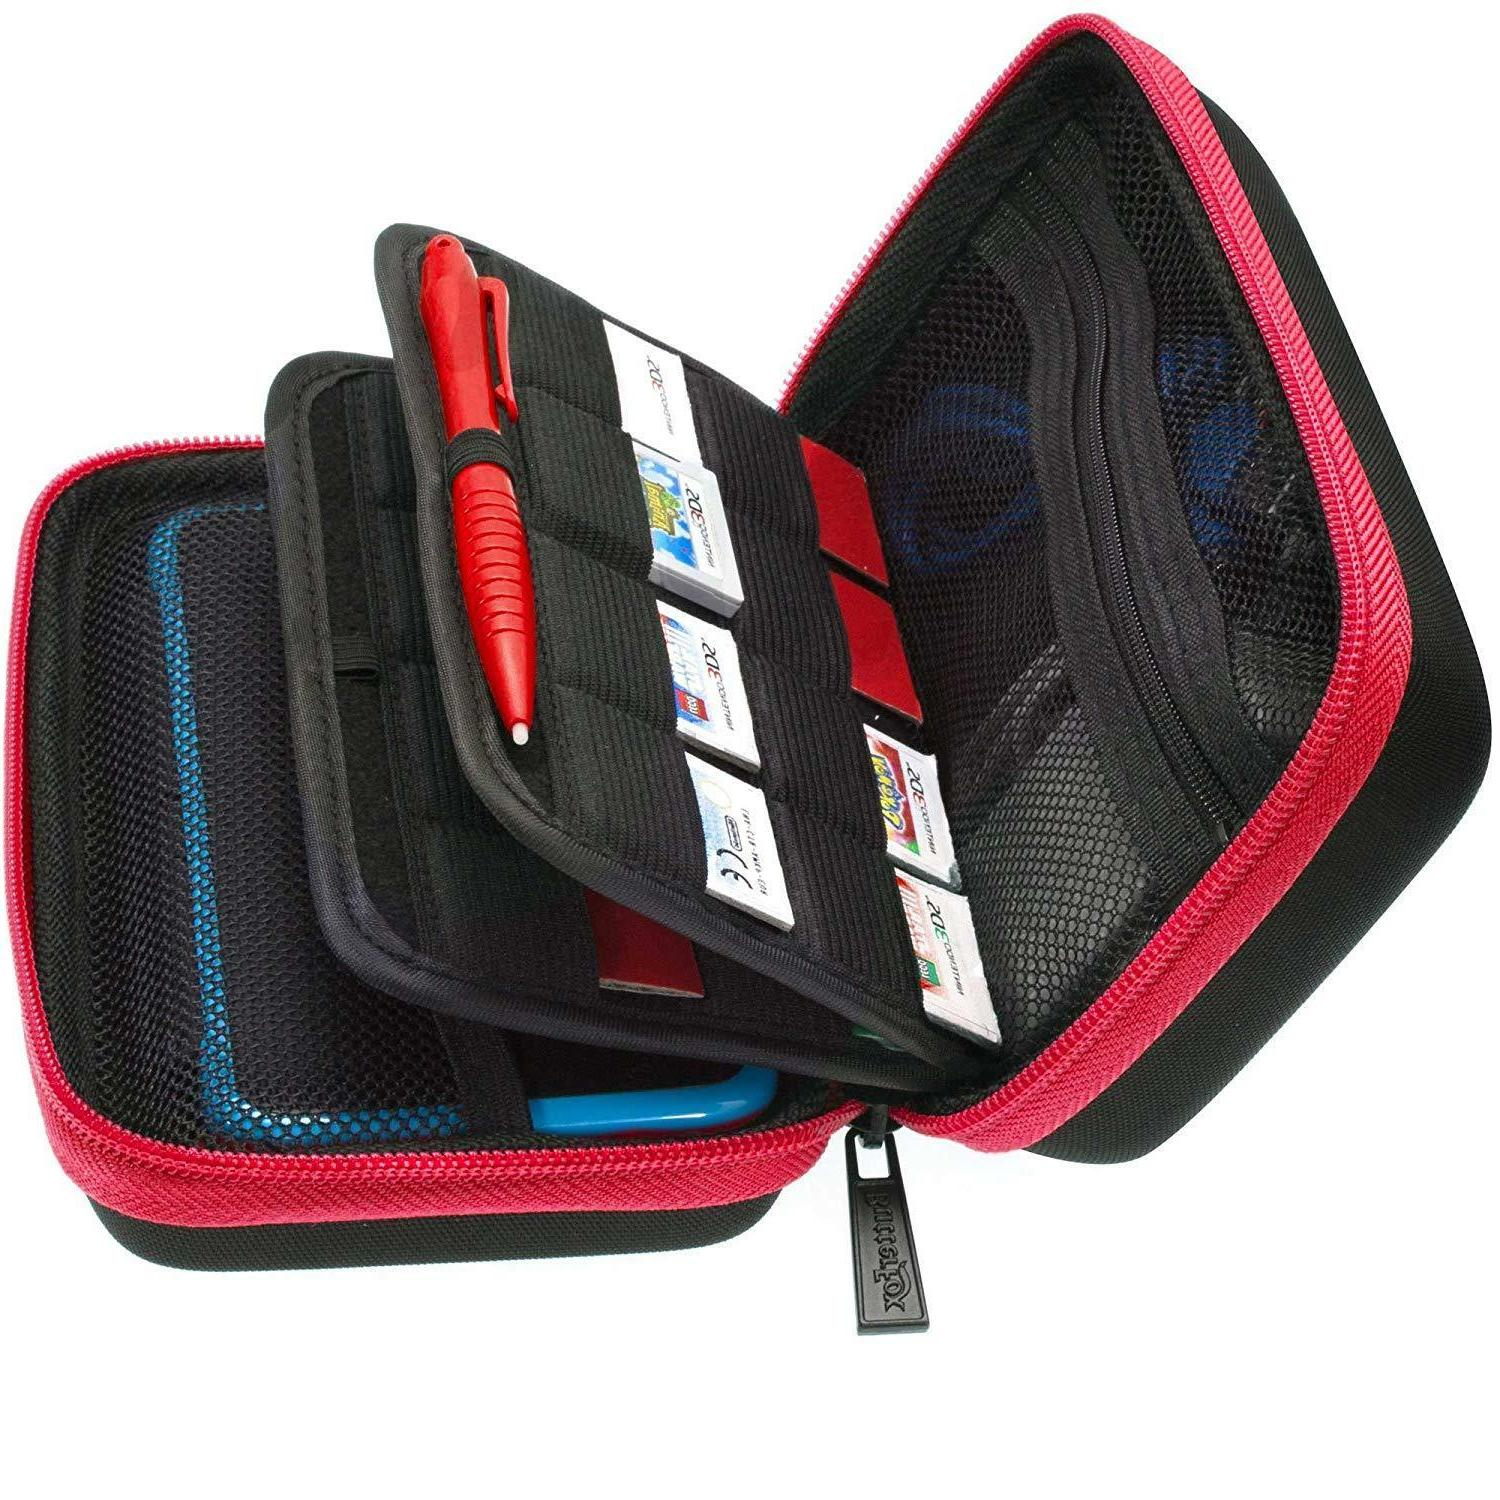 Nintendo XL Carry Case,Large Stylus, Fits Wall